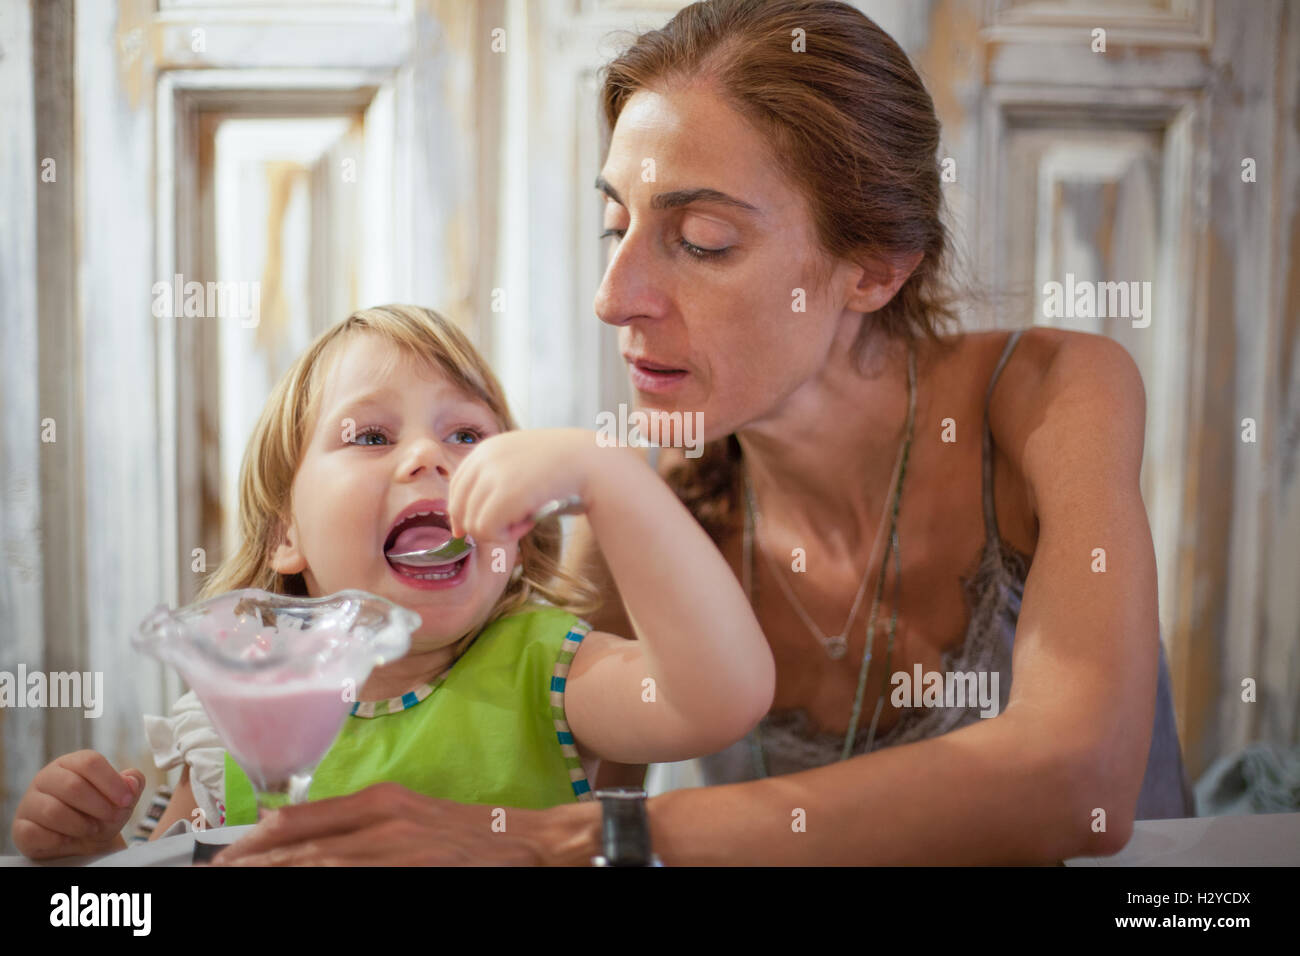 three years old child with green bib open big mouth eating strawberry ice cream with spoon from crystal cup next - Stock Image